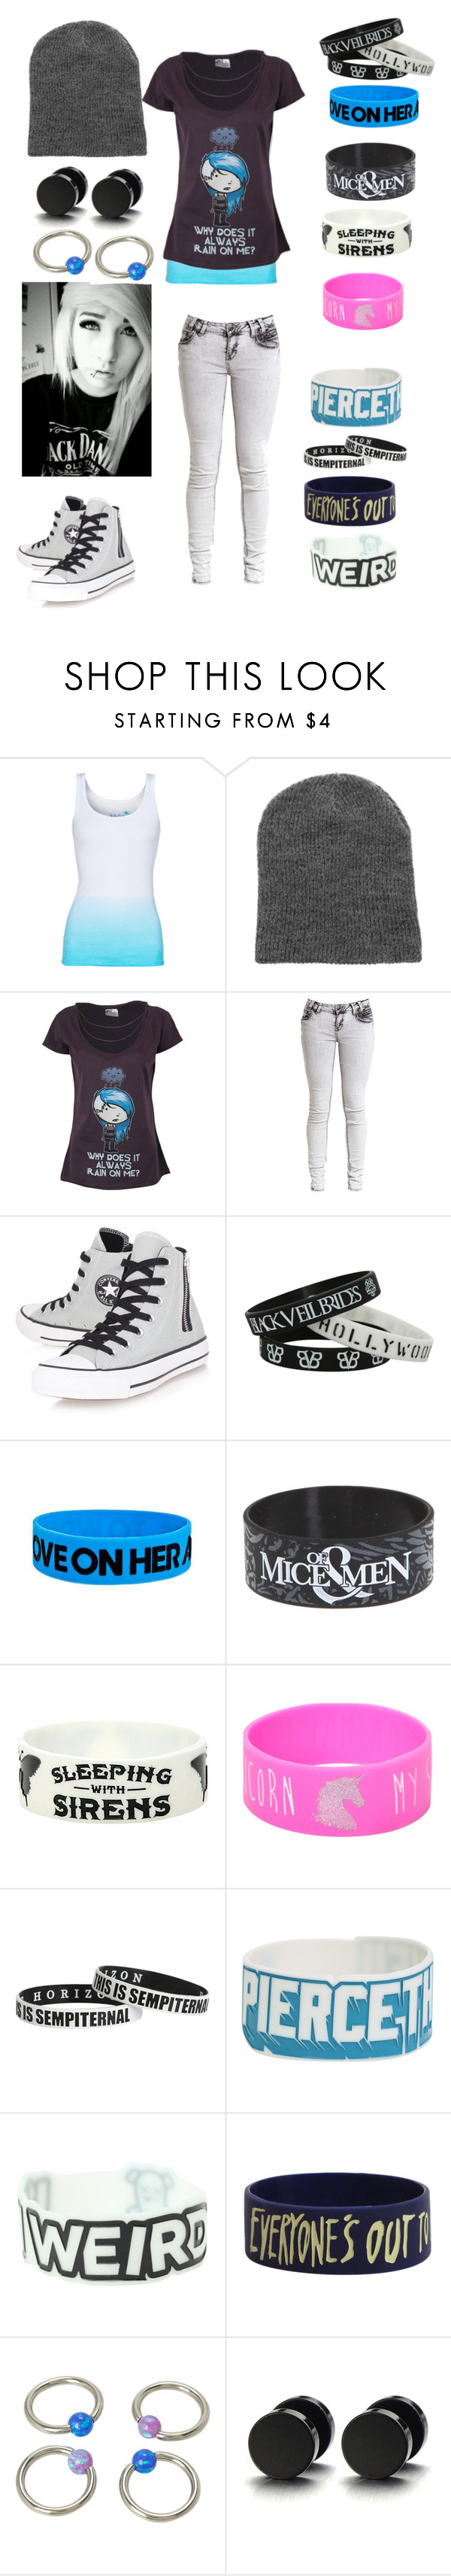 """""""it may rain on you and be foggy for a bit,but you will shine and what you want will come and youll go from that sad little cloud to a bright rainbow"""" by avril-lavigne-fan-forever ❤ liked on Polyvore featuring Juvia and Converse"""